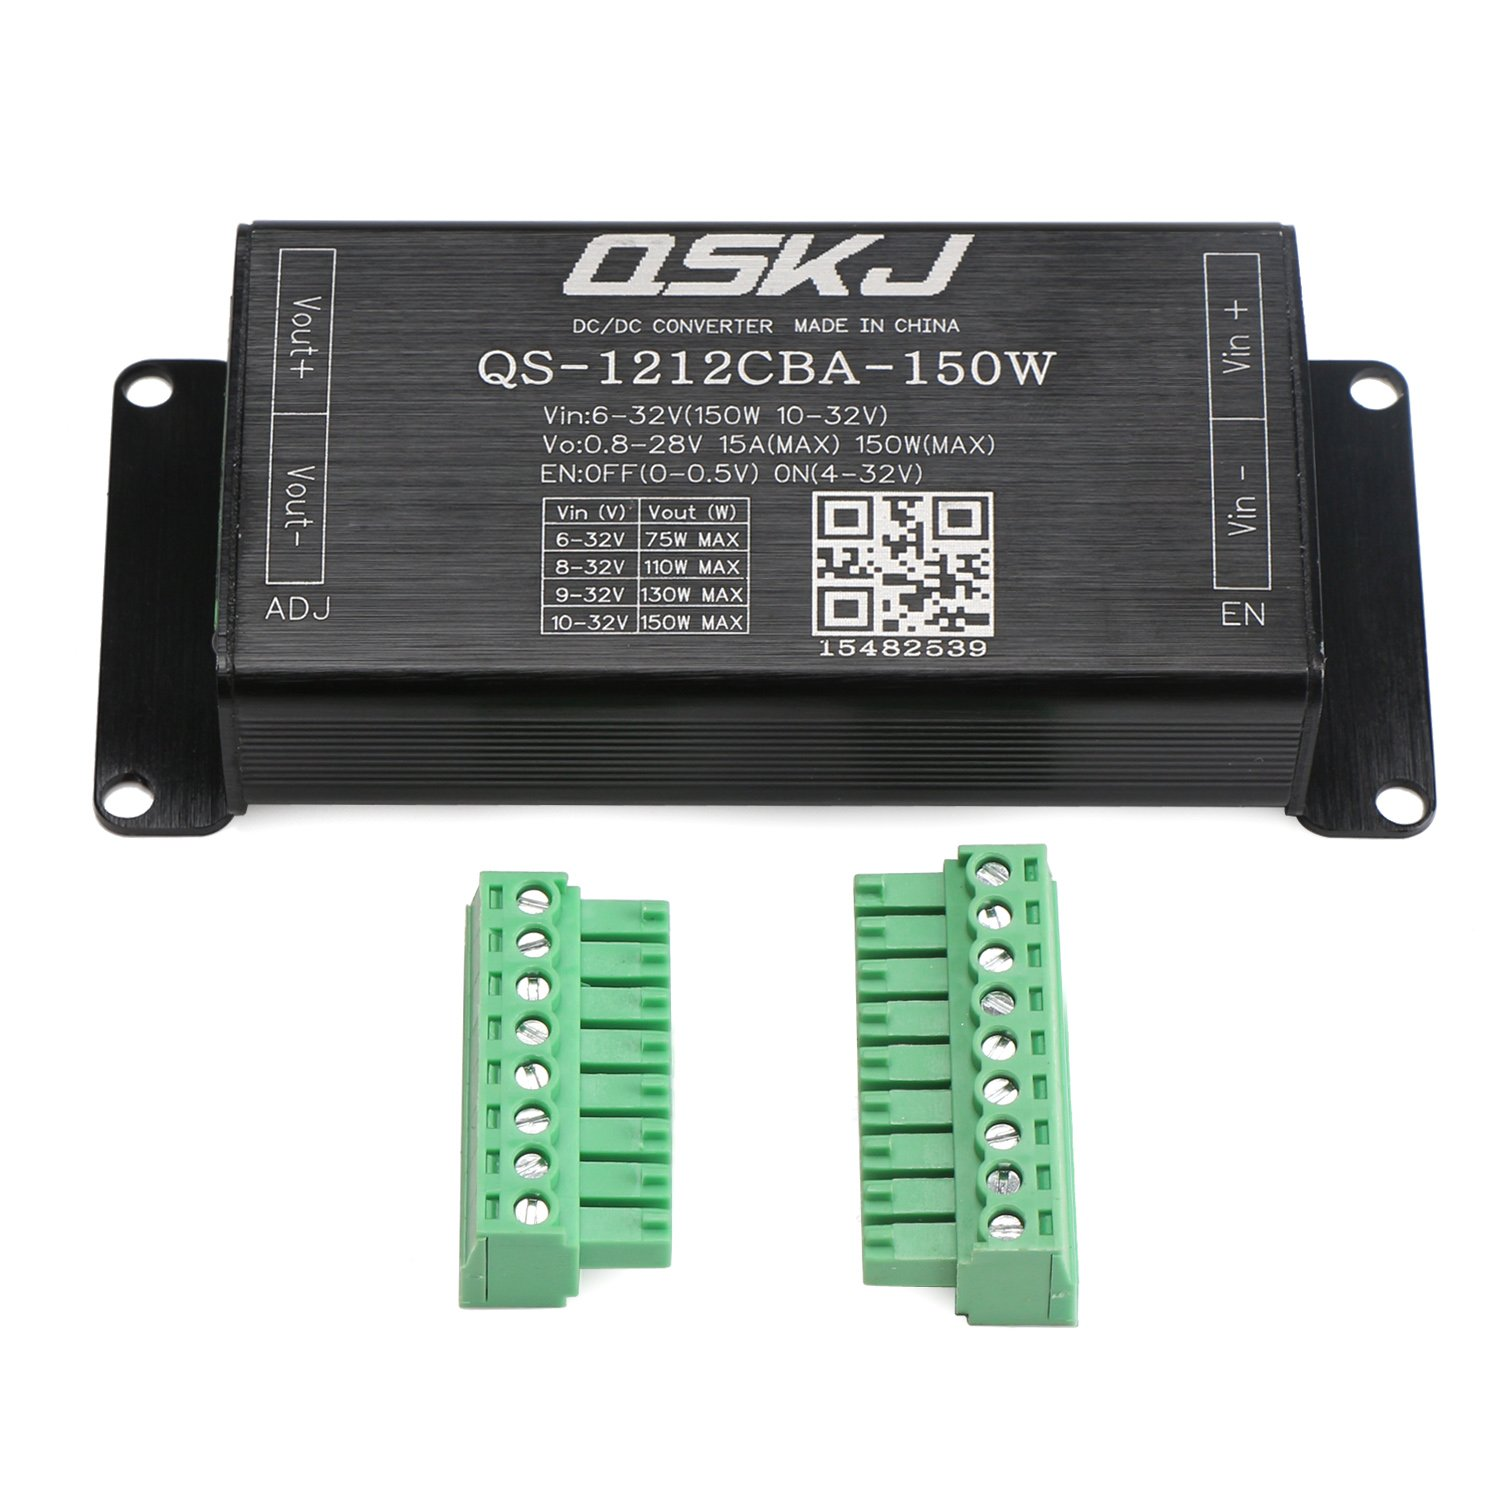 DC-DC 6V-32V TO 0.8-28V 150W 15A Buck-Boost Voltage Regulator QS-1212CBA-150W